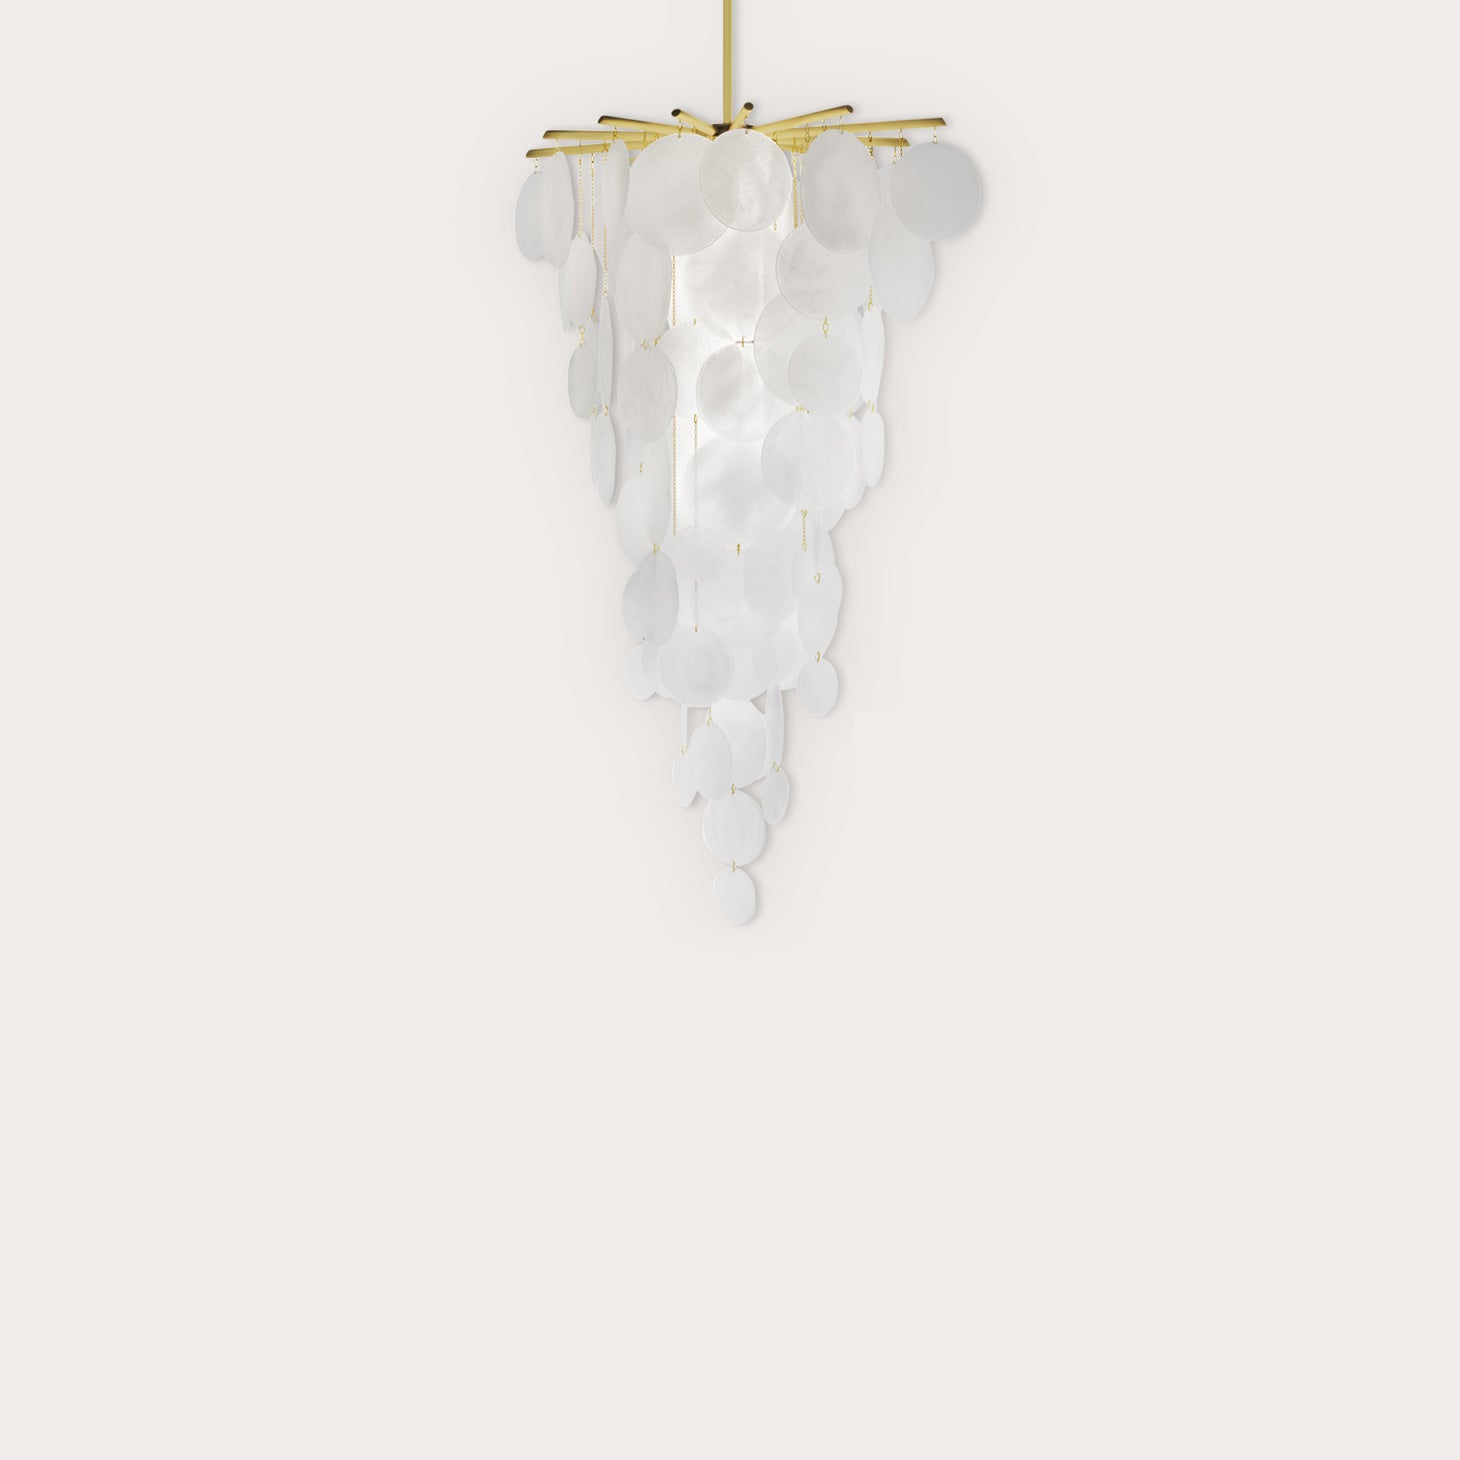 Nimbus Cascade Lighting Chris Turner Designer Furniture Sku: 632-160-10068